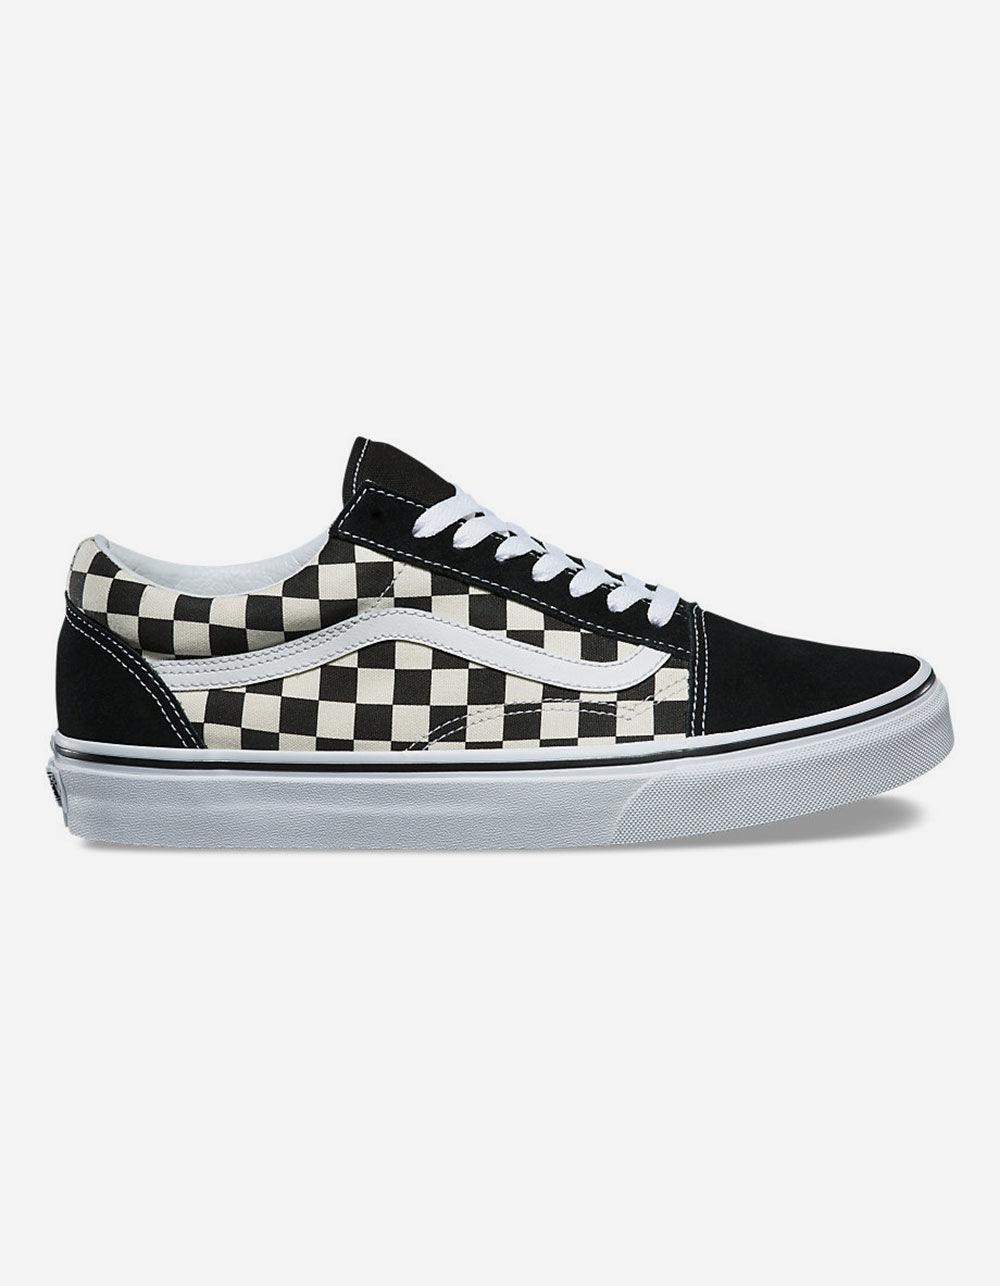 0364e54d3a4 Lyst - Vans Primary Check Old Skool Black   White Shoes in Black for ...